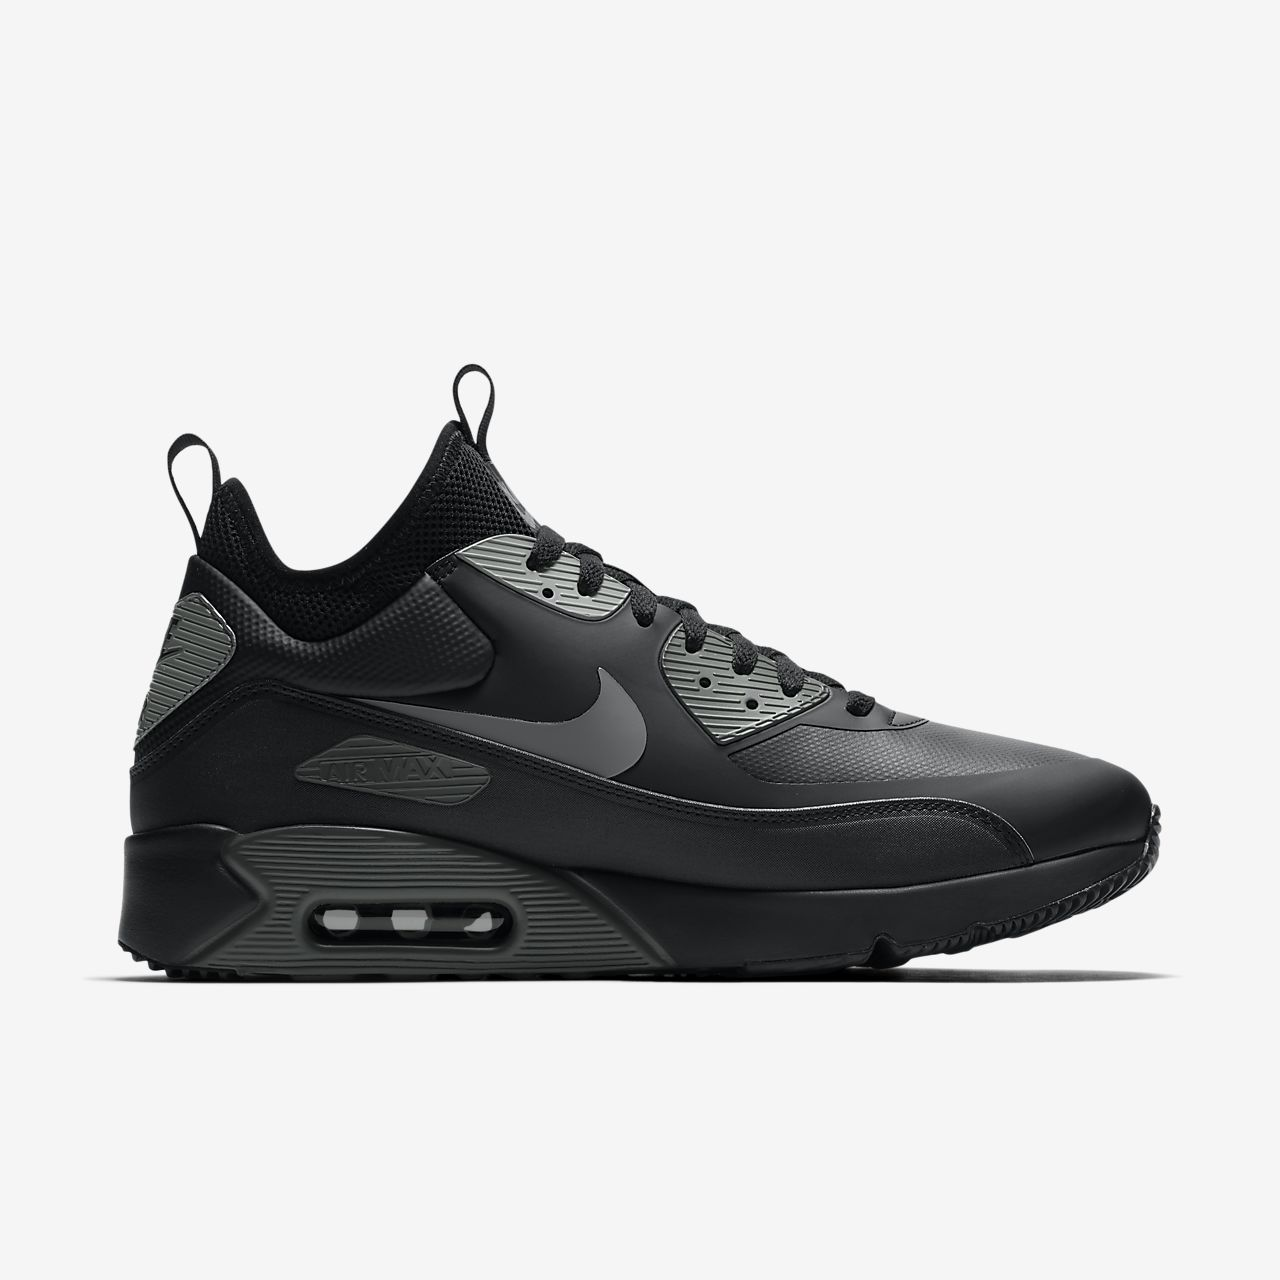 nike air max 90 ultra mid winter. Black Bedroom Furniture Sets. Home Design Ideas